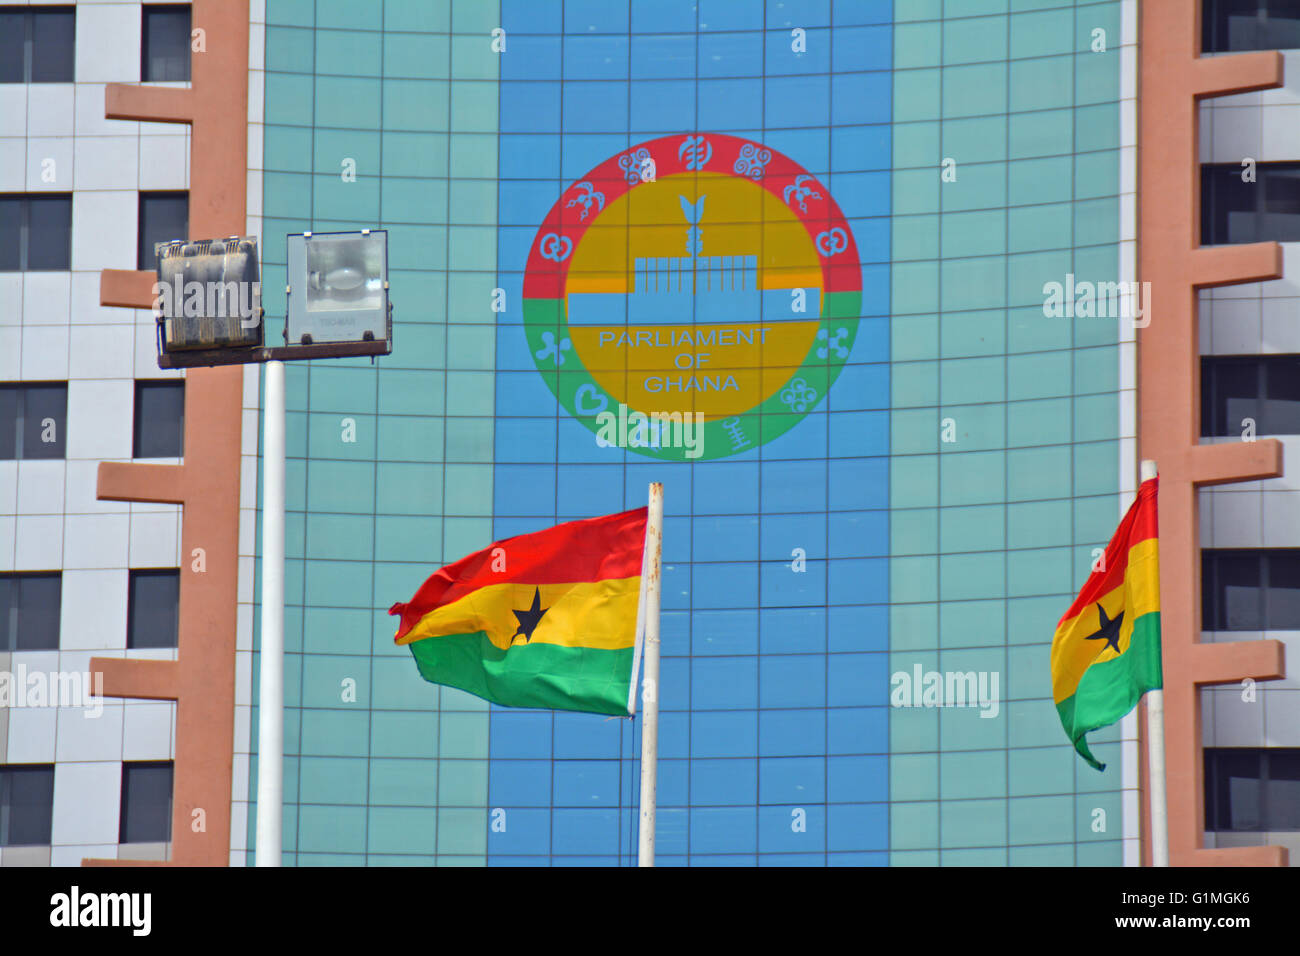 The newly refurbished Job 600 building of the Parliament of Ghana, shoving the parliament emblem and Ghana Flags - Stock Image